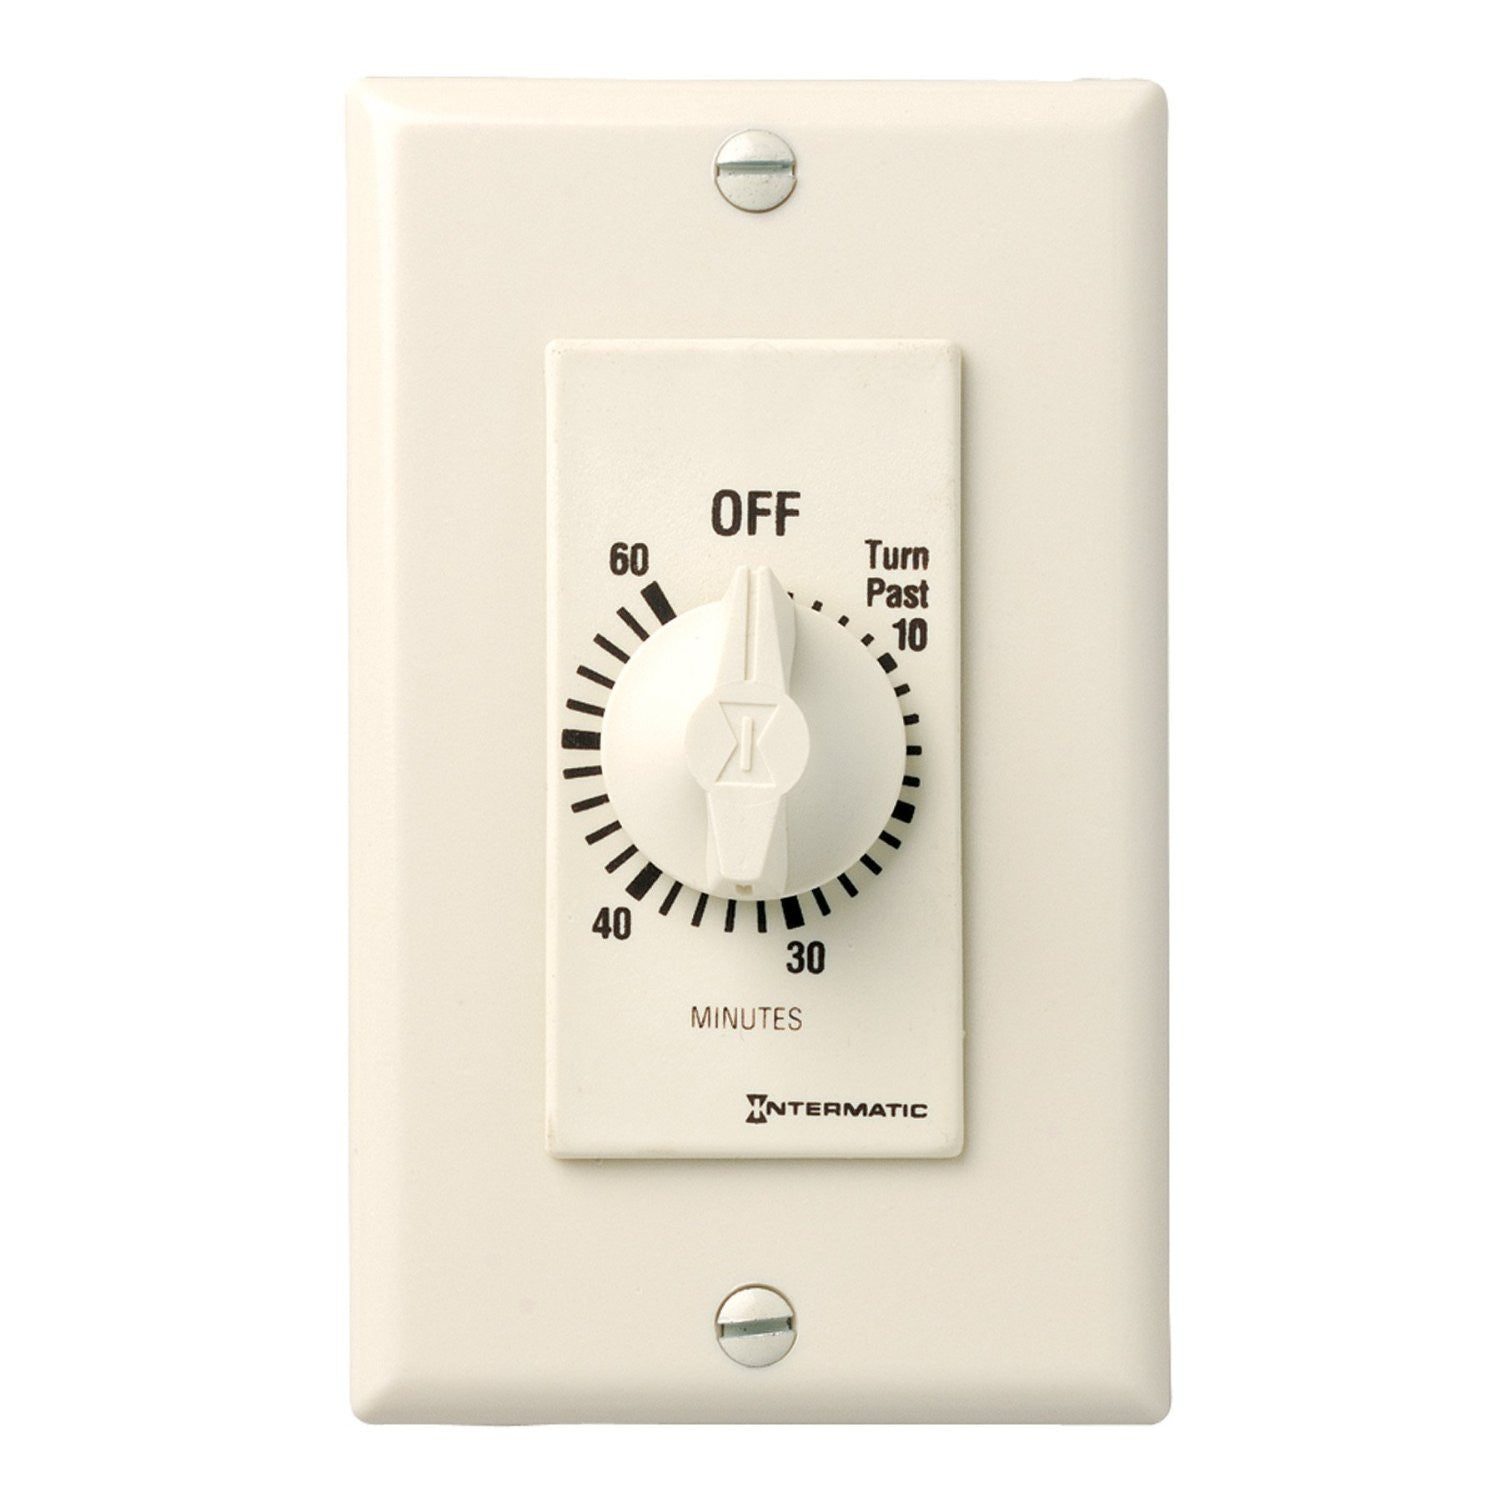 E211835 Wall Timer Timer Switches Amazon Com Enerlites Het01 Switc Intermatic Timer Replacement